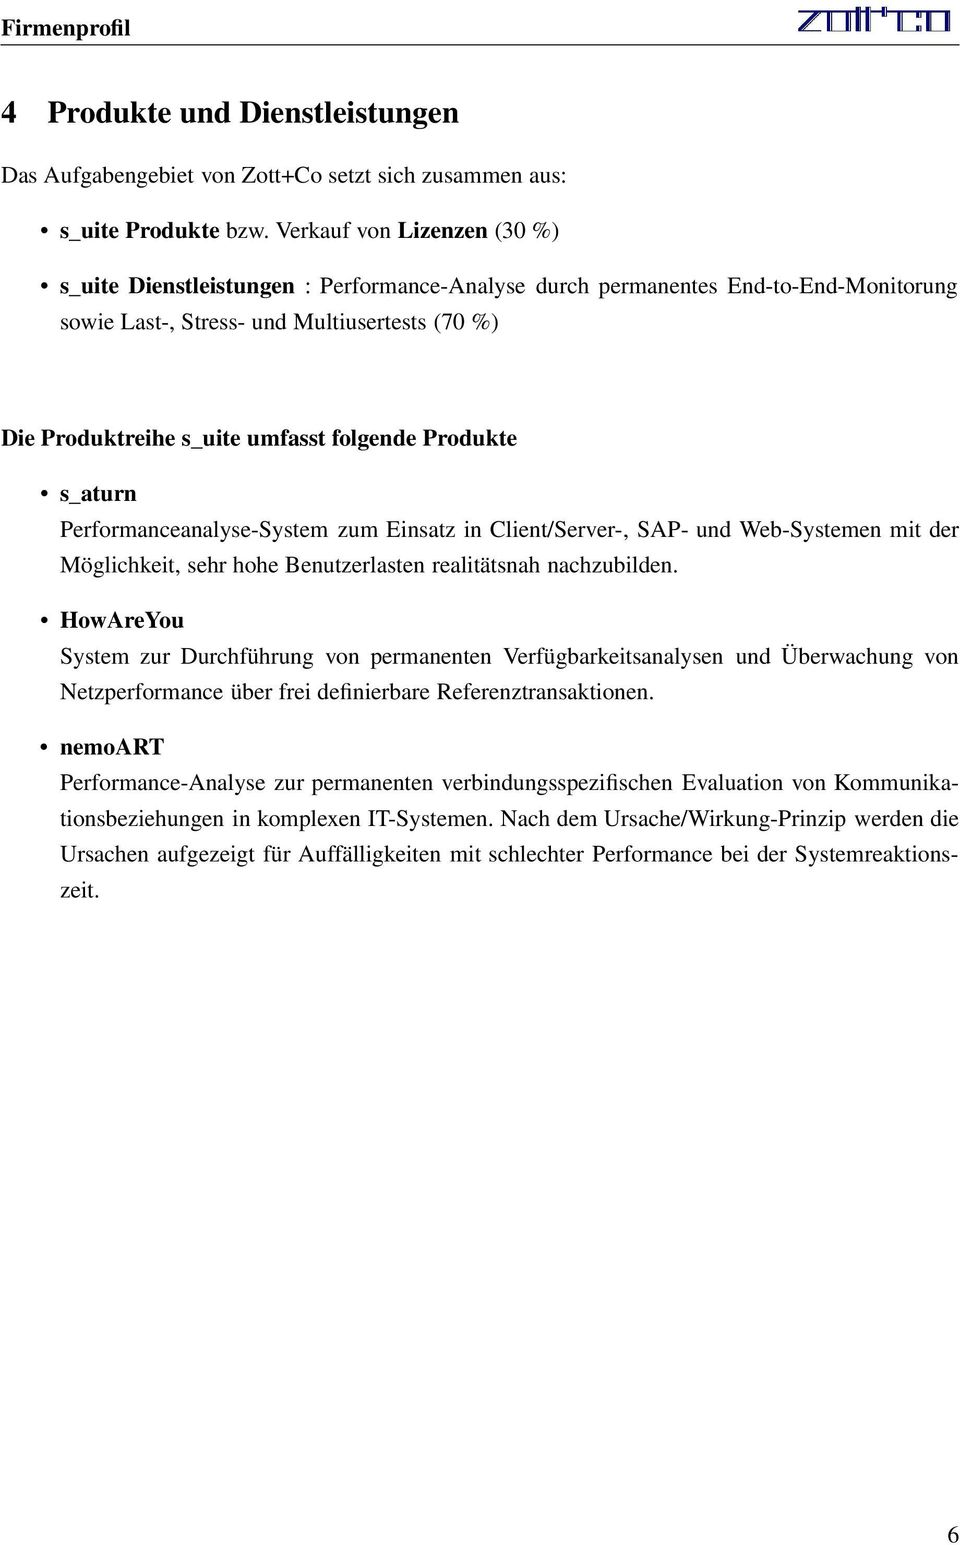 Groß Superbowl Quadrate Vorlage Zeitgenössisch - Entry Level Resume ...